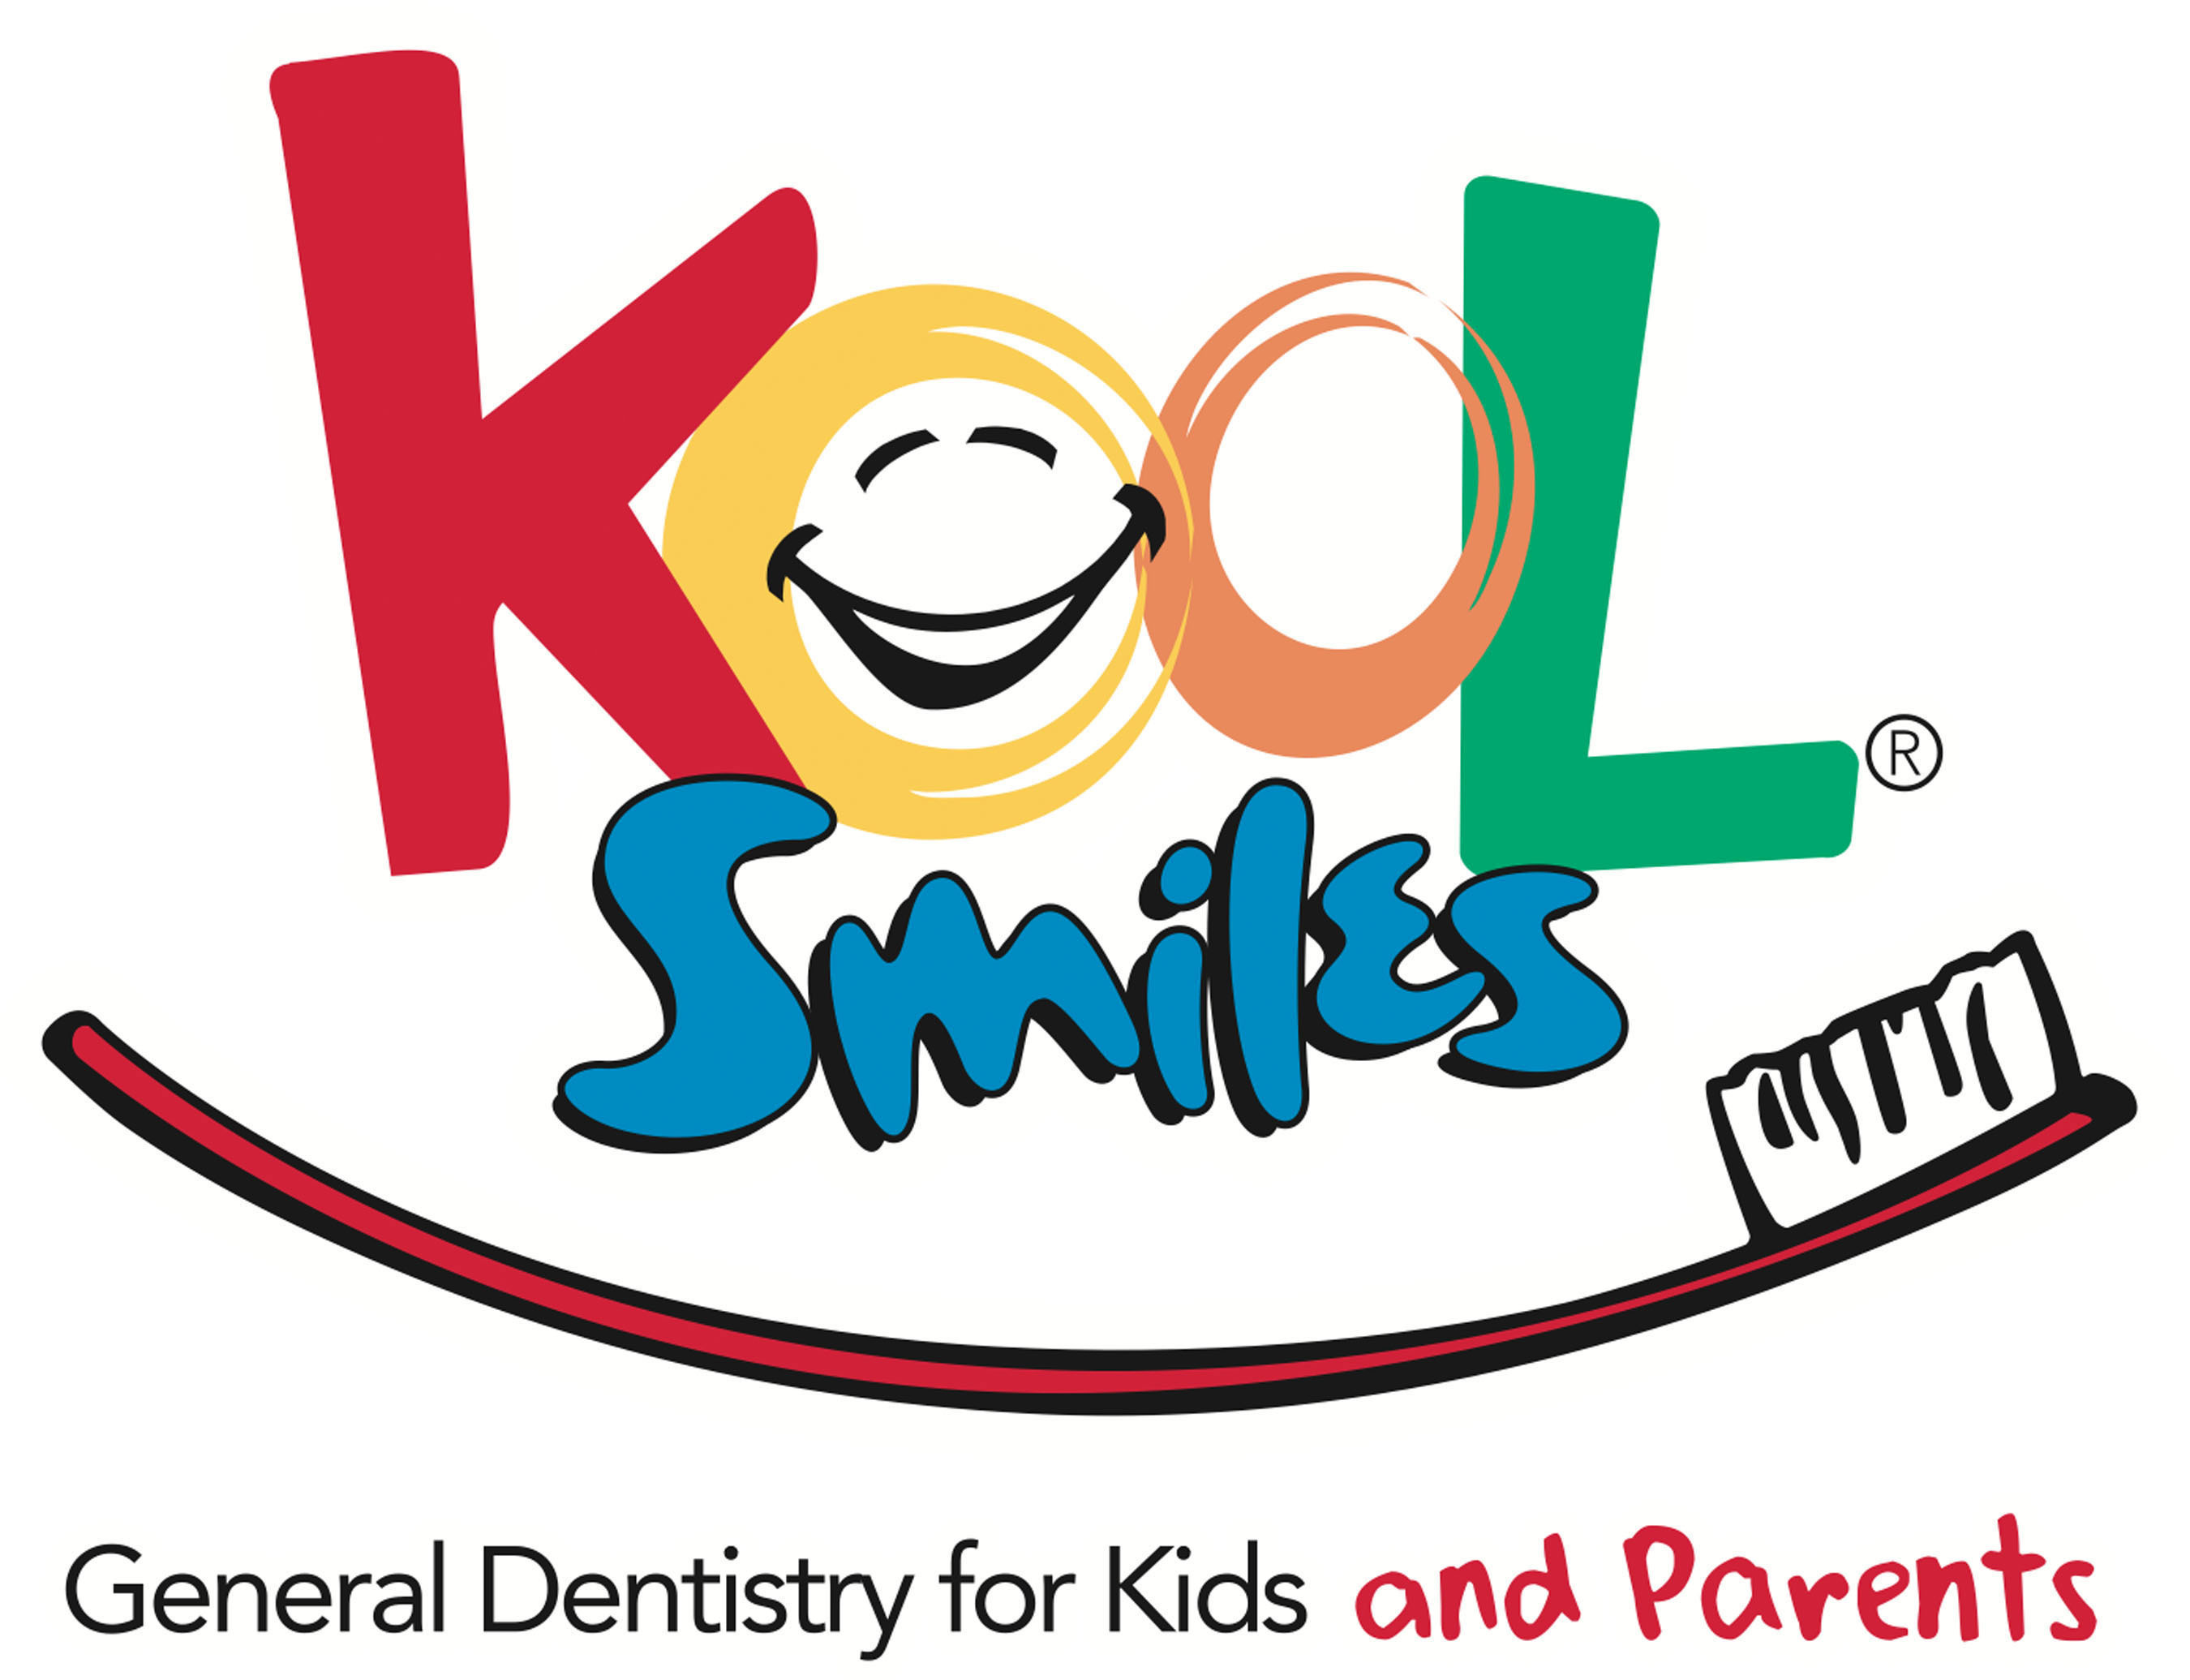 Kool Smiles is a general dentist for kids and their family